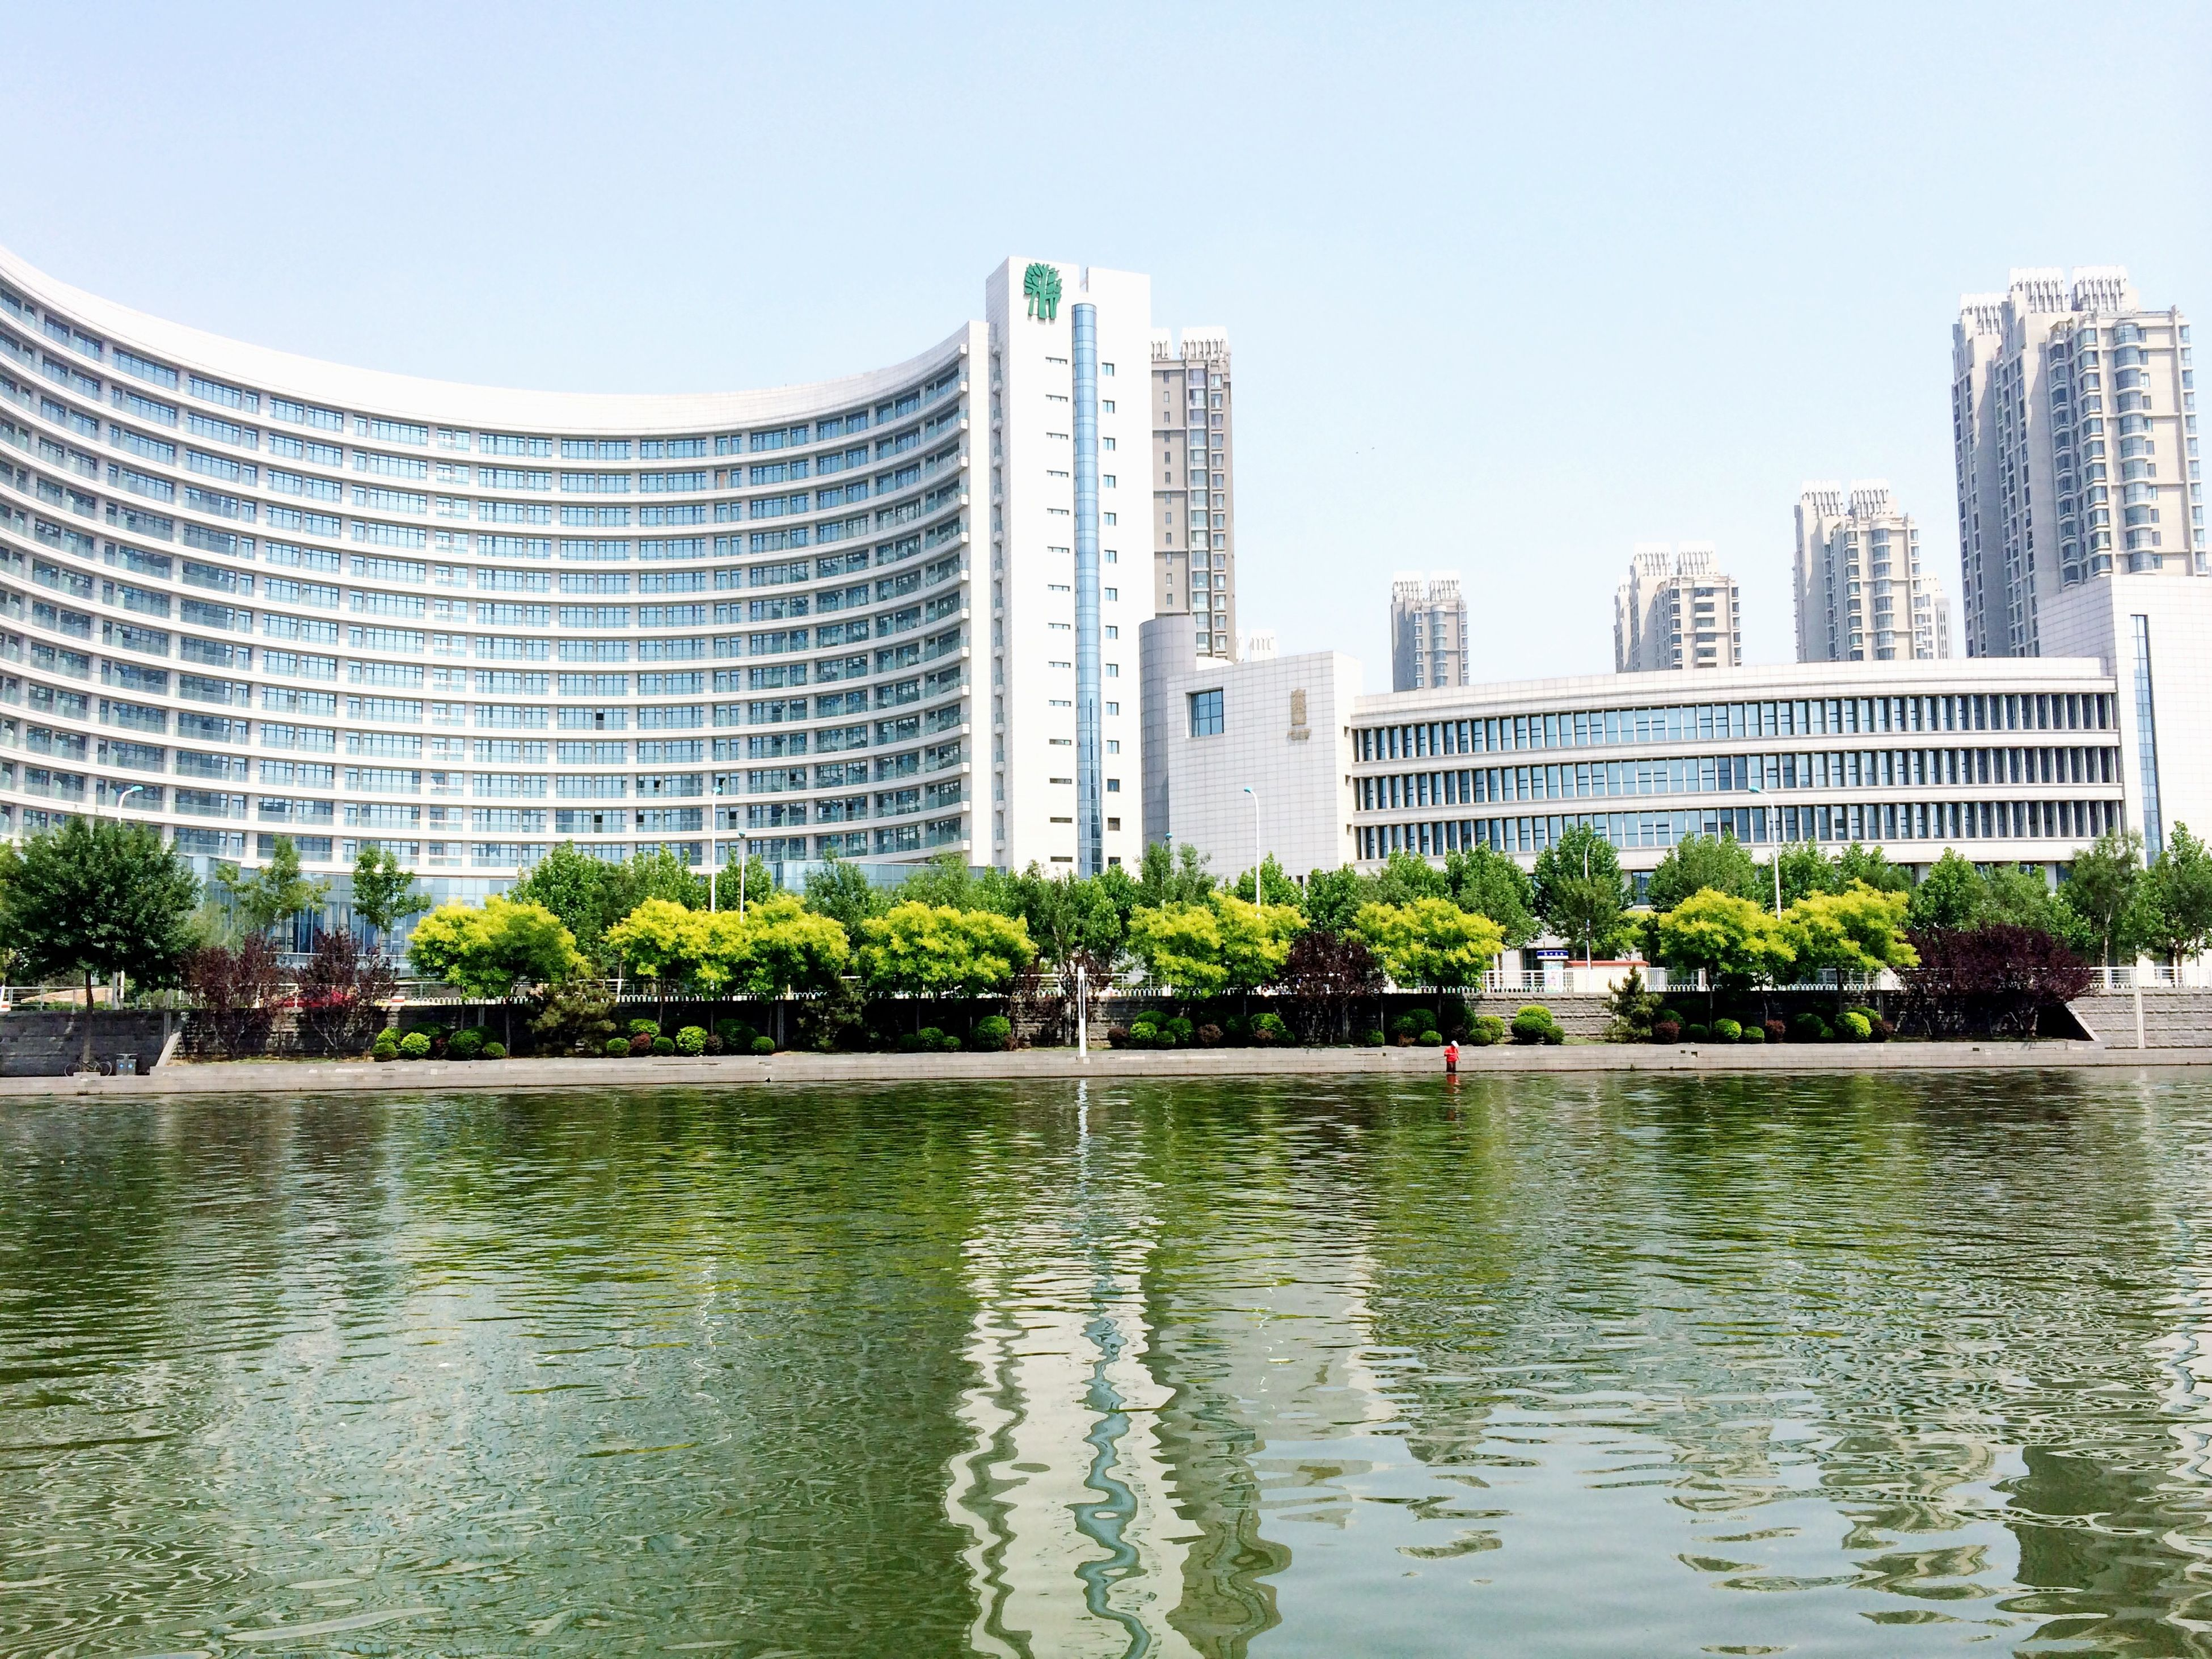 building exterior, architecture, built structure, water, city, reflection, clear sky, waterfront, modern, office building, skyscraper, tree, building, tower, tall - high, river, city life, growth, sky, cityscape